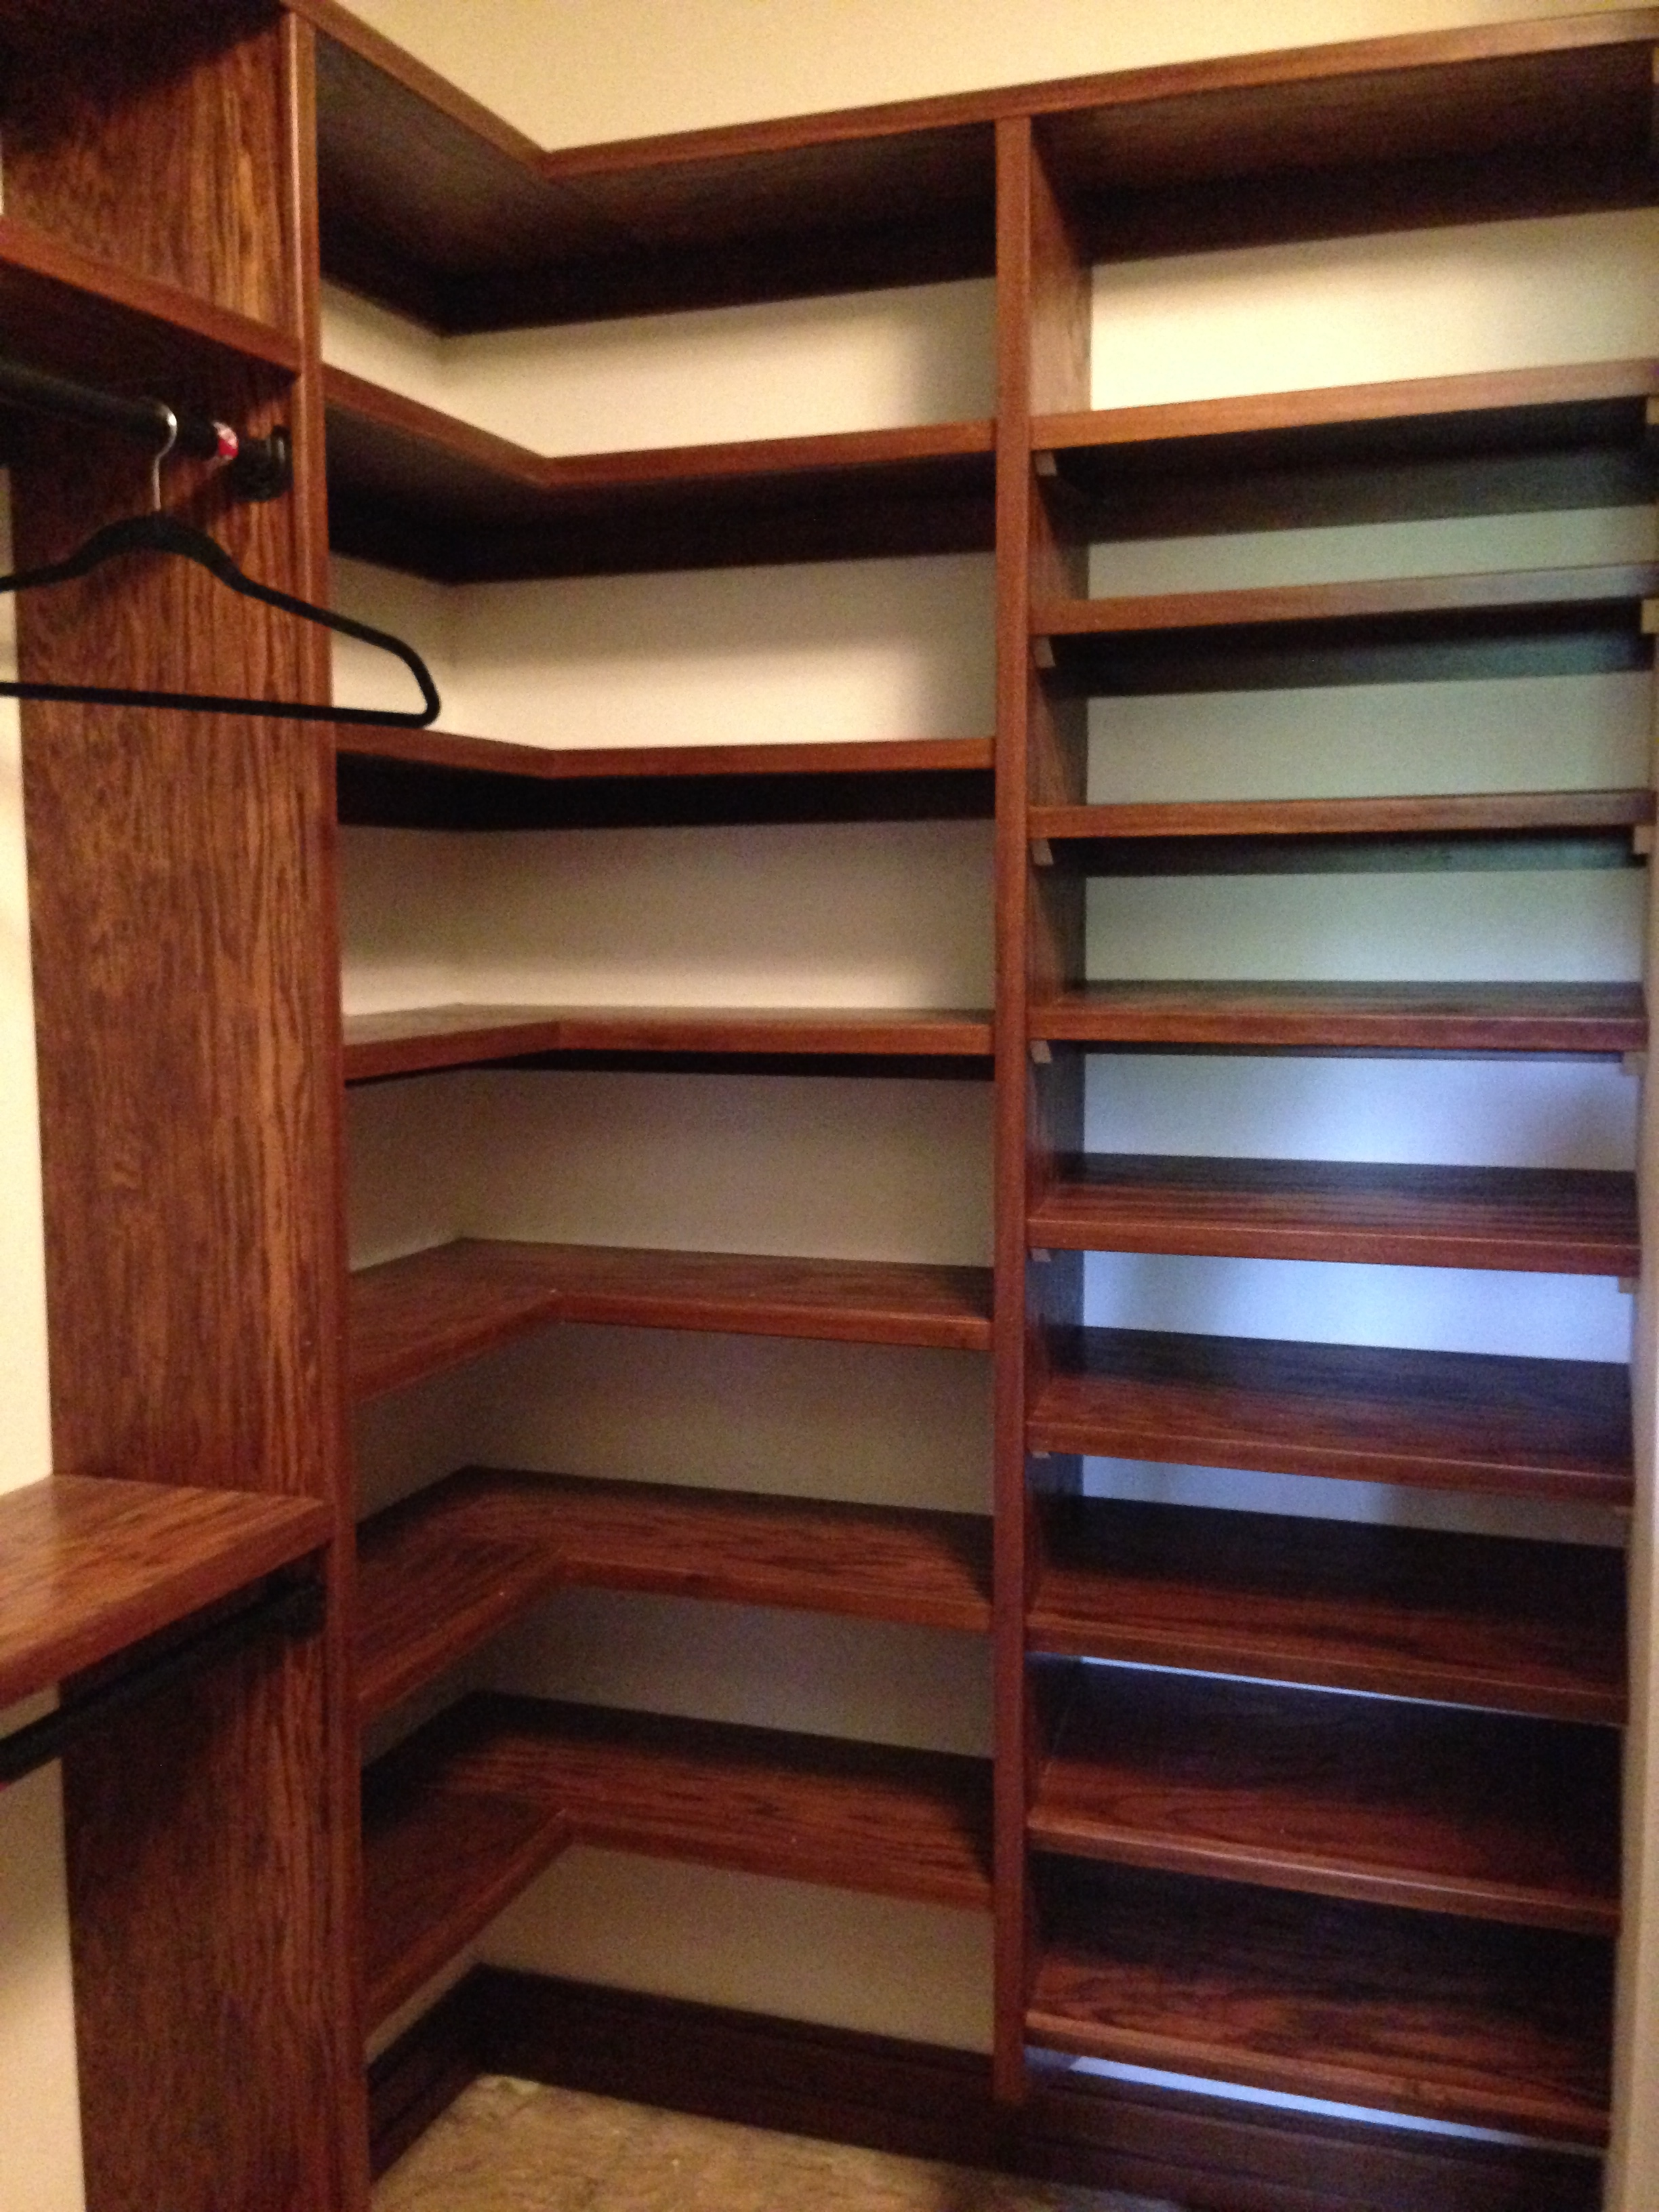 My shoe rack to the right; Billu0027s corner shelves to the left